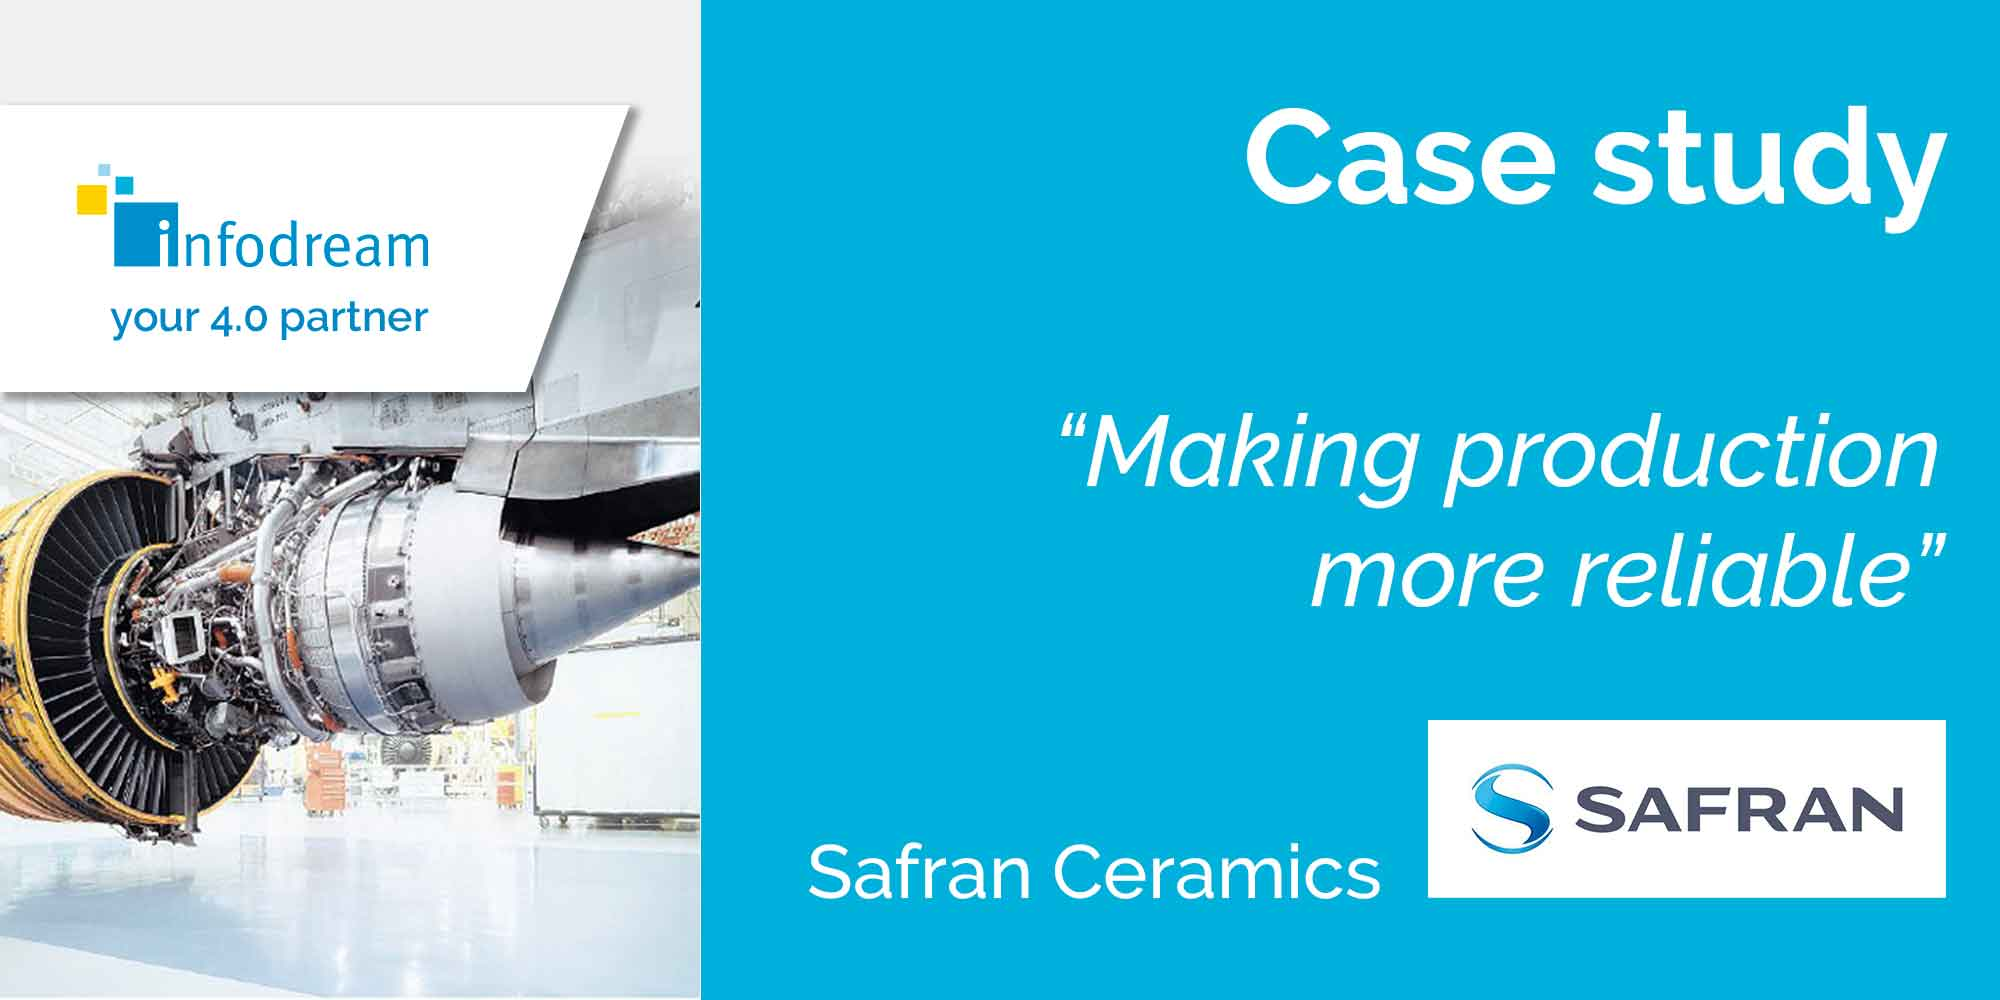 Safran Ceramics Improves Production Reliability With Infodream's MES Qualaxy